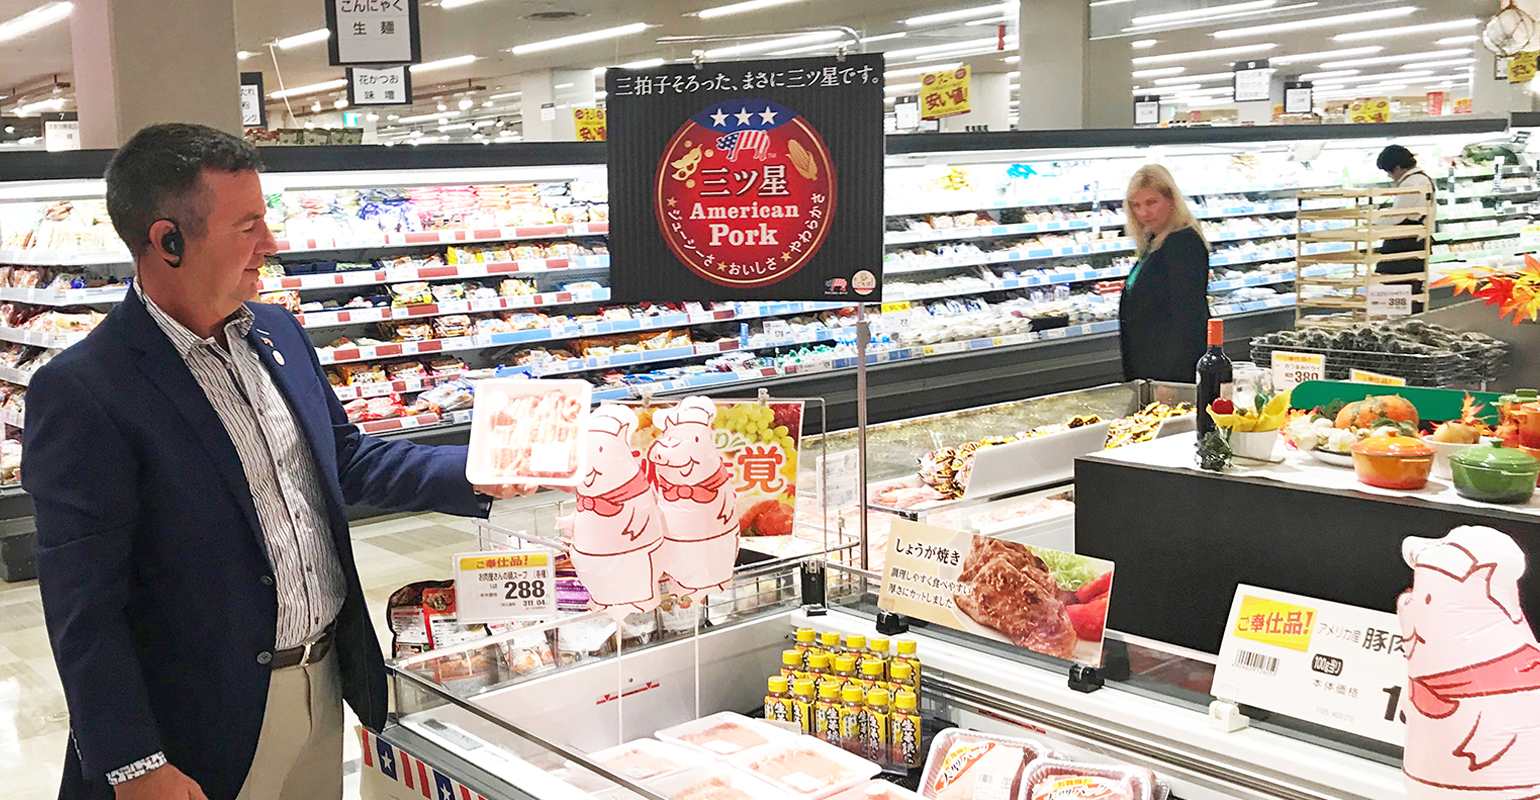 Tim Chancellor examines a U.S. pork promotional display in Japan